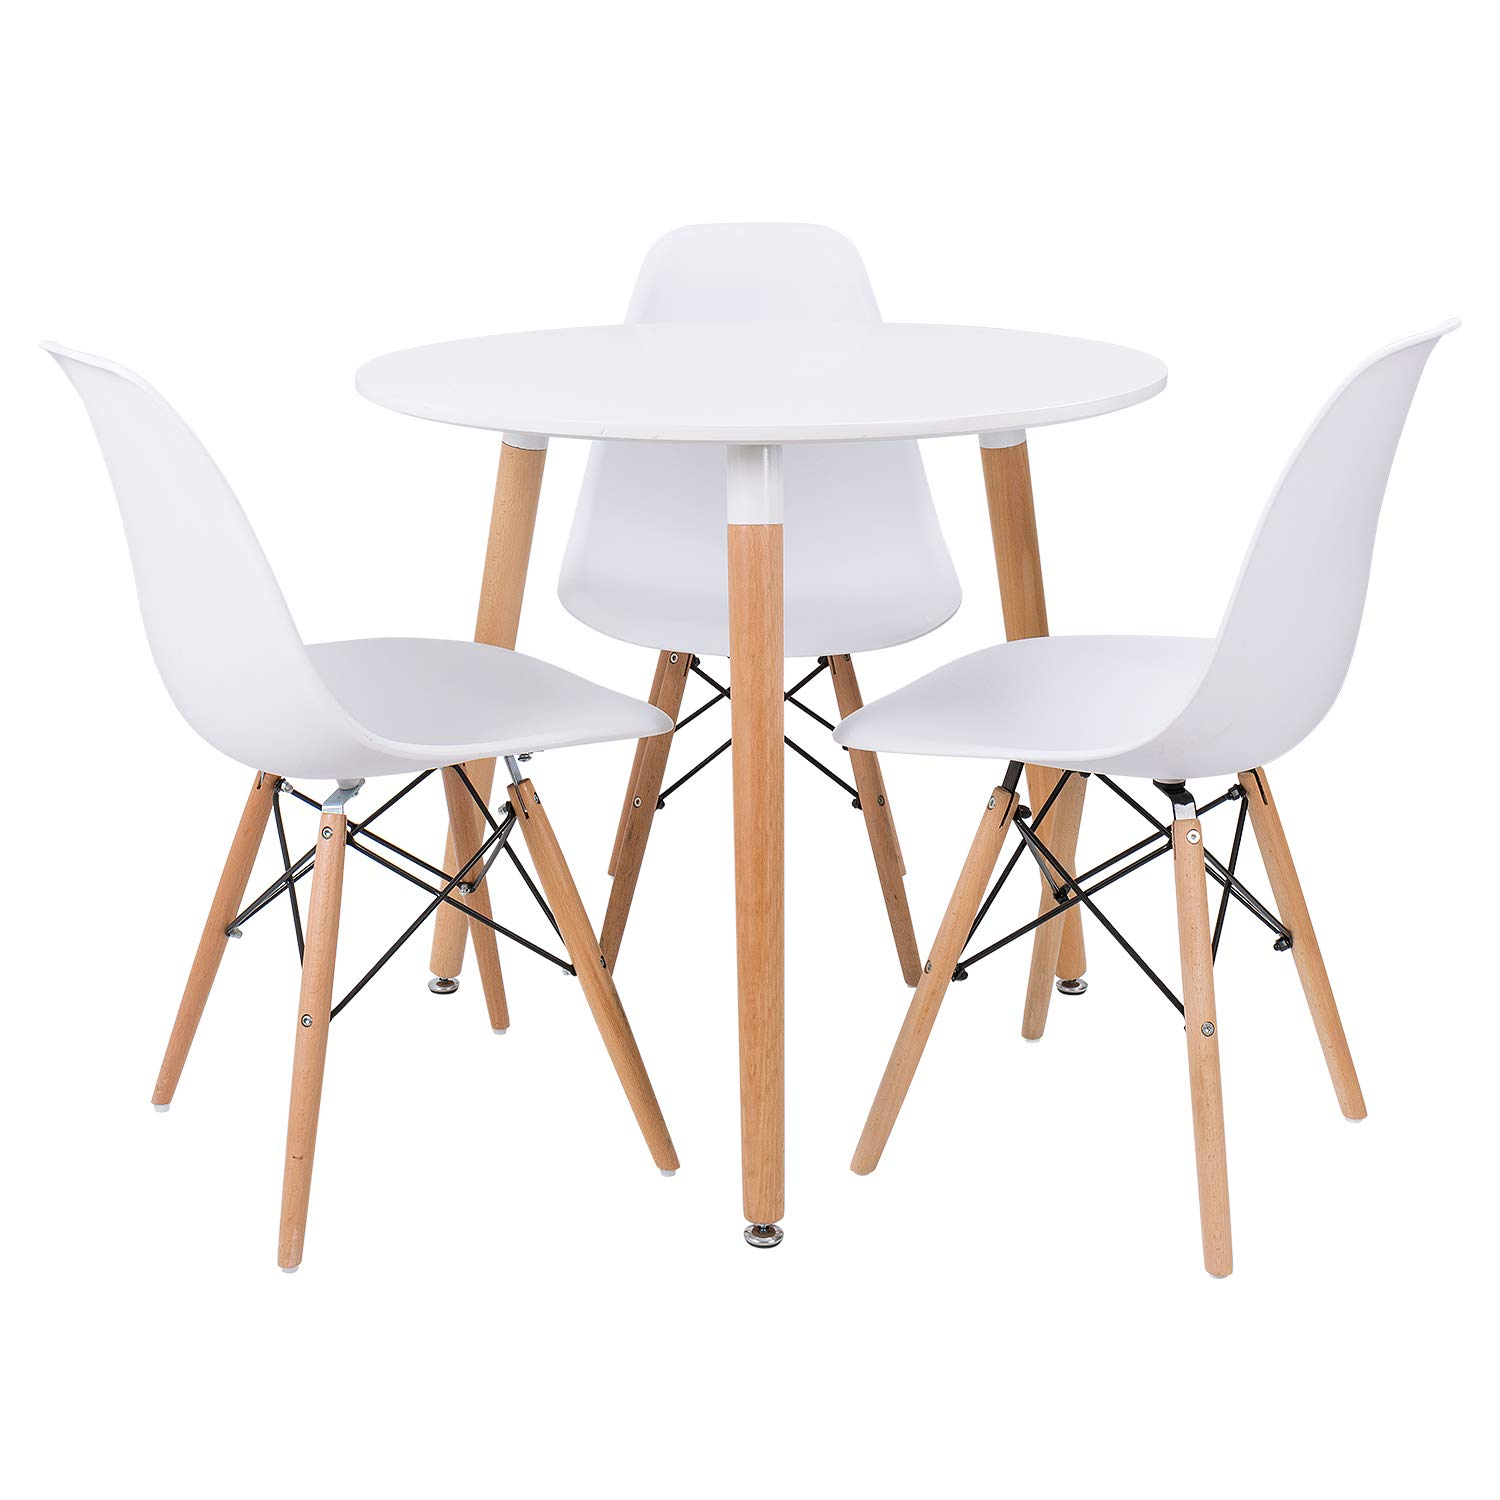 Furmax Kitchen Dining Table Modern Style Round Leisure Coffee Table,Office Coference Desk with Wood Legs for Kitchen Living Room (White) by Furmax (Image #3)